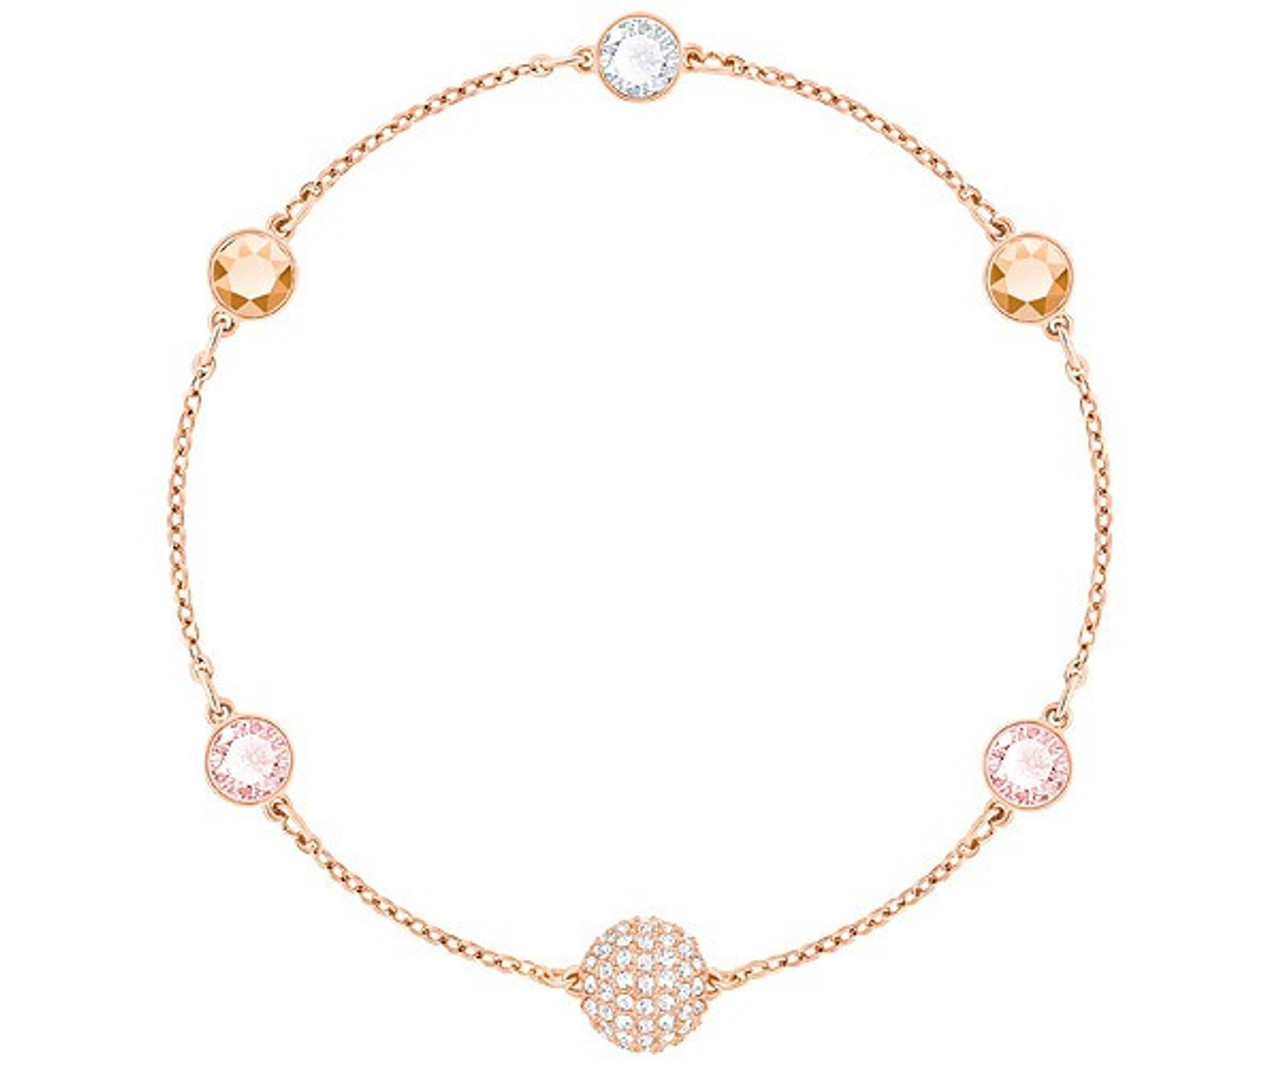 197c26636 Swarovski Remix Collection Timeless Bracelet in Rose-Gold - Best Accents